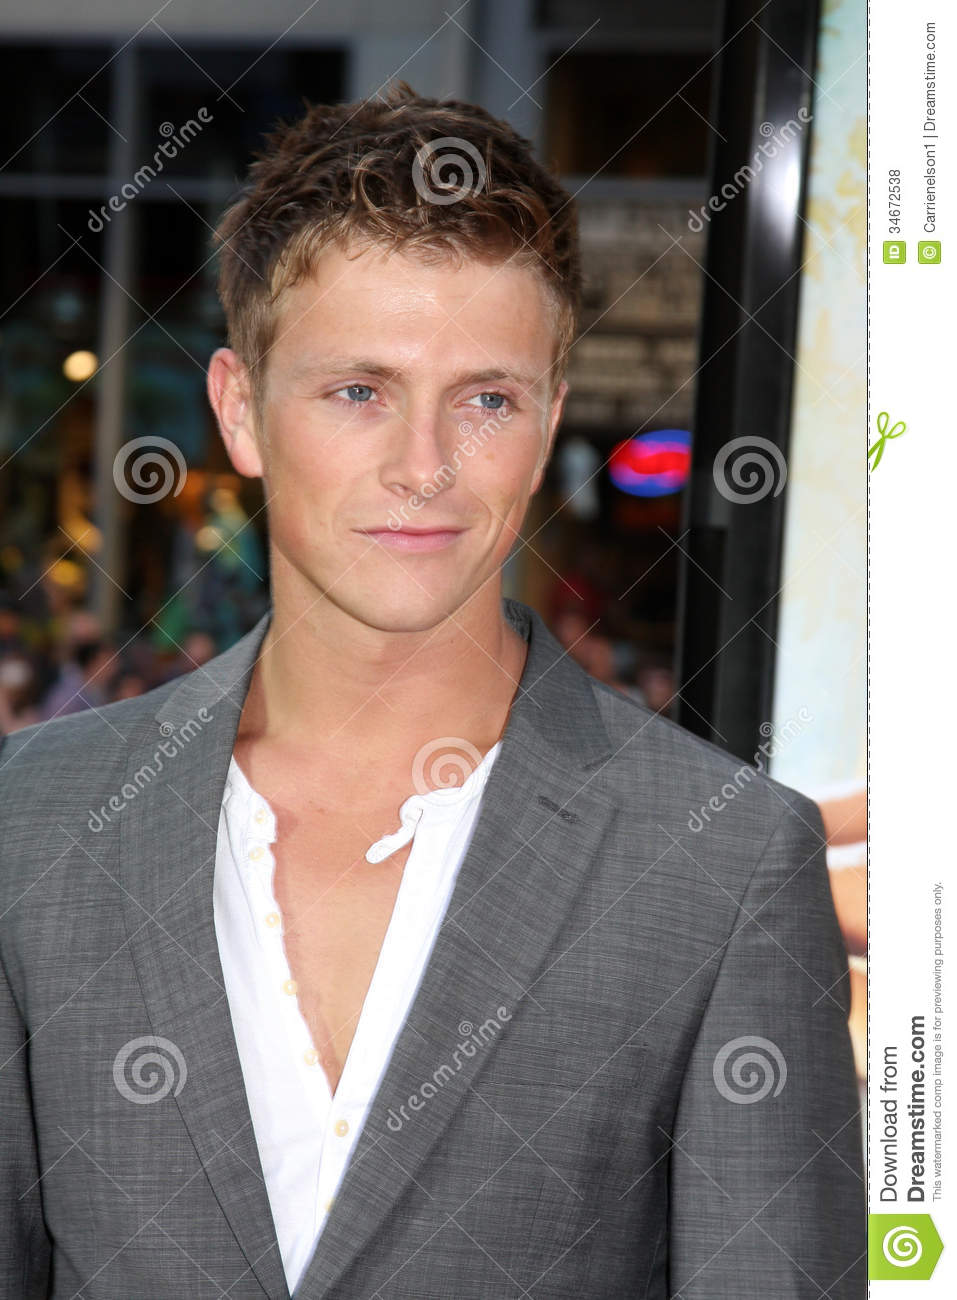 charlie bewley instagramcharlie bewley twitter, charlie bewley vk, charlie bewley renegades, charlie bewley facebook, charlie bewley instagram, charlie bewley, charlie bewley twilight, charlie bewley married, charlie bewley vampire diaries, charlie bewley 2015, charlie bewley tumblr, charlie bewley hammer of the gods, charlie bewley like crazy, charlie bewley photoshoot, charlie bewley 2016, charlie bewley gif, charlie bewley gallery, charlie bewley freundin, charlie bewley gay, charlie bewley imdb